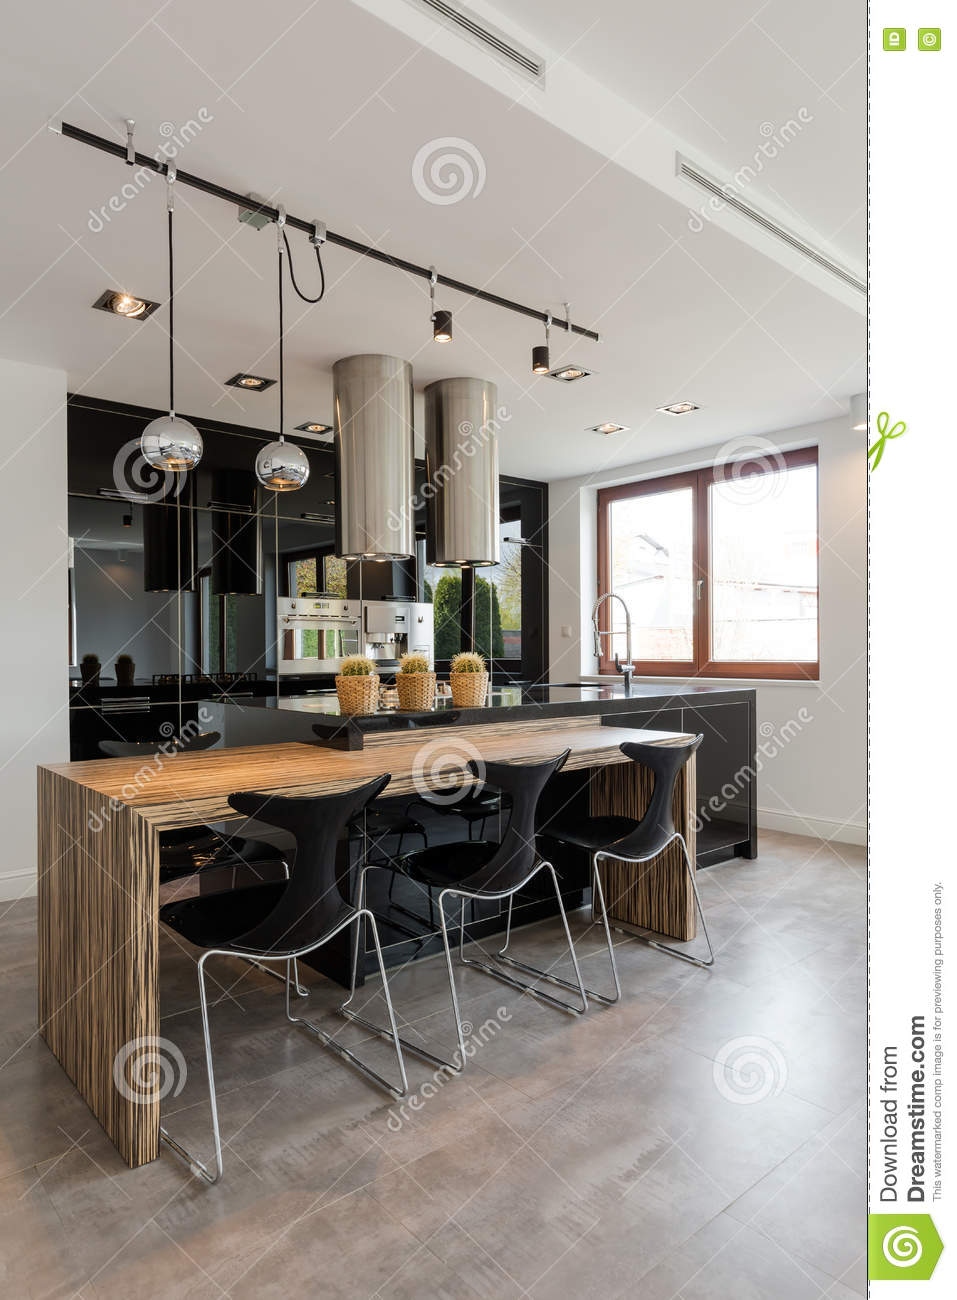 Awesome Cucina Di Classe Images - Home Interior Ideas - hollerbach.us